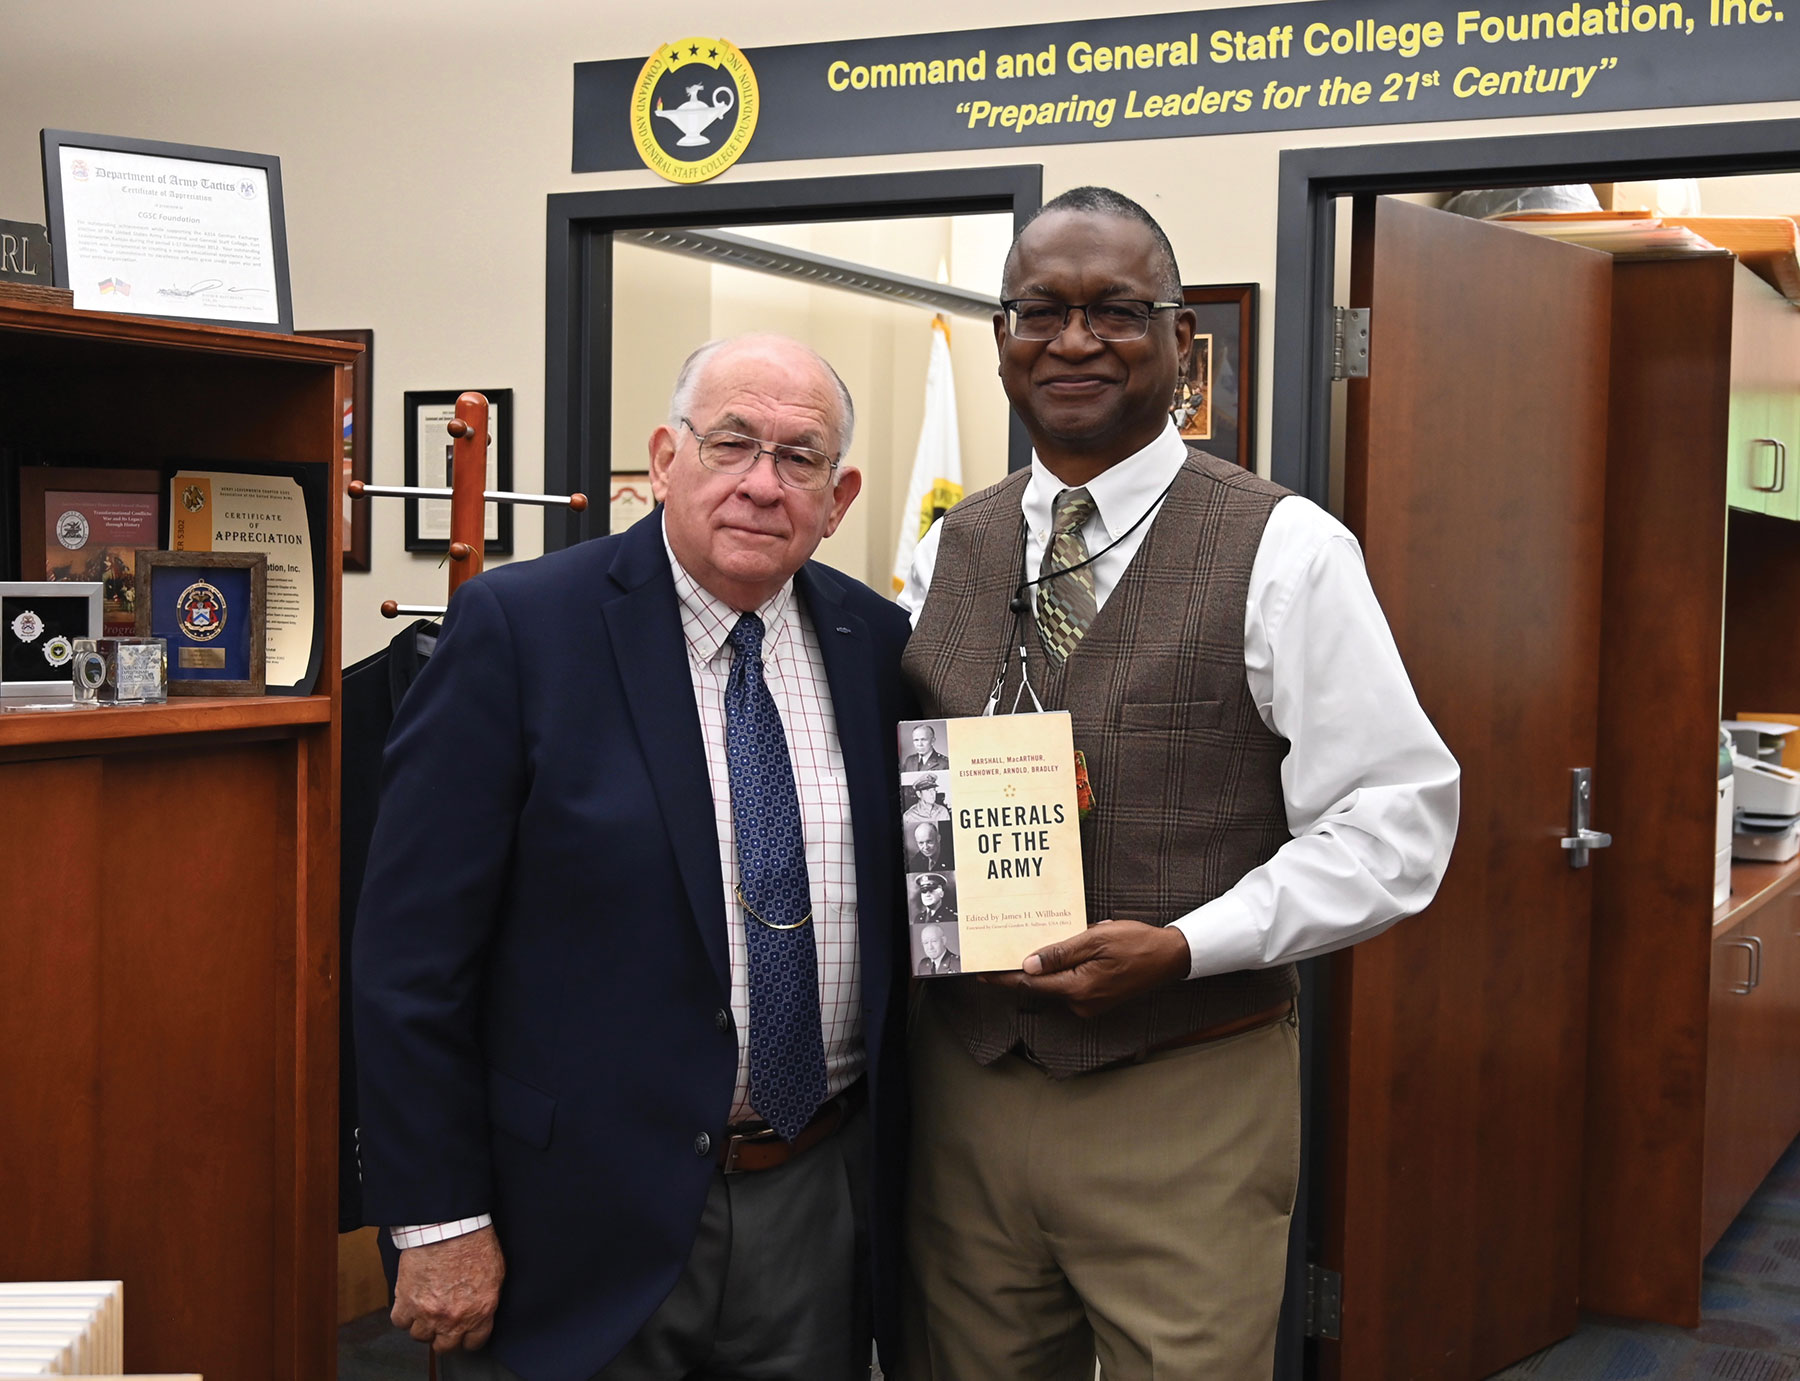 """CGSC Professor Dwayne Wagner reunites with Dr. James H. Willbanks, editor of 'Generals of the Army,"""" and former director of CGSC's Department of Military History, during the book signing in the CGSC Foundation gift shop on May 13, 2021."""